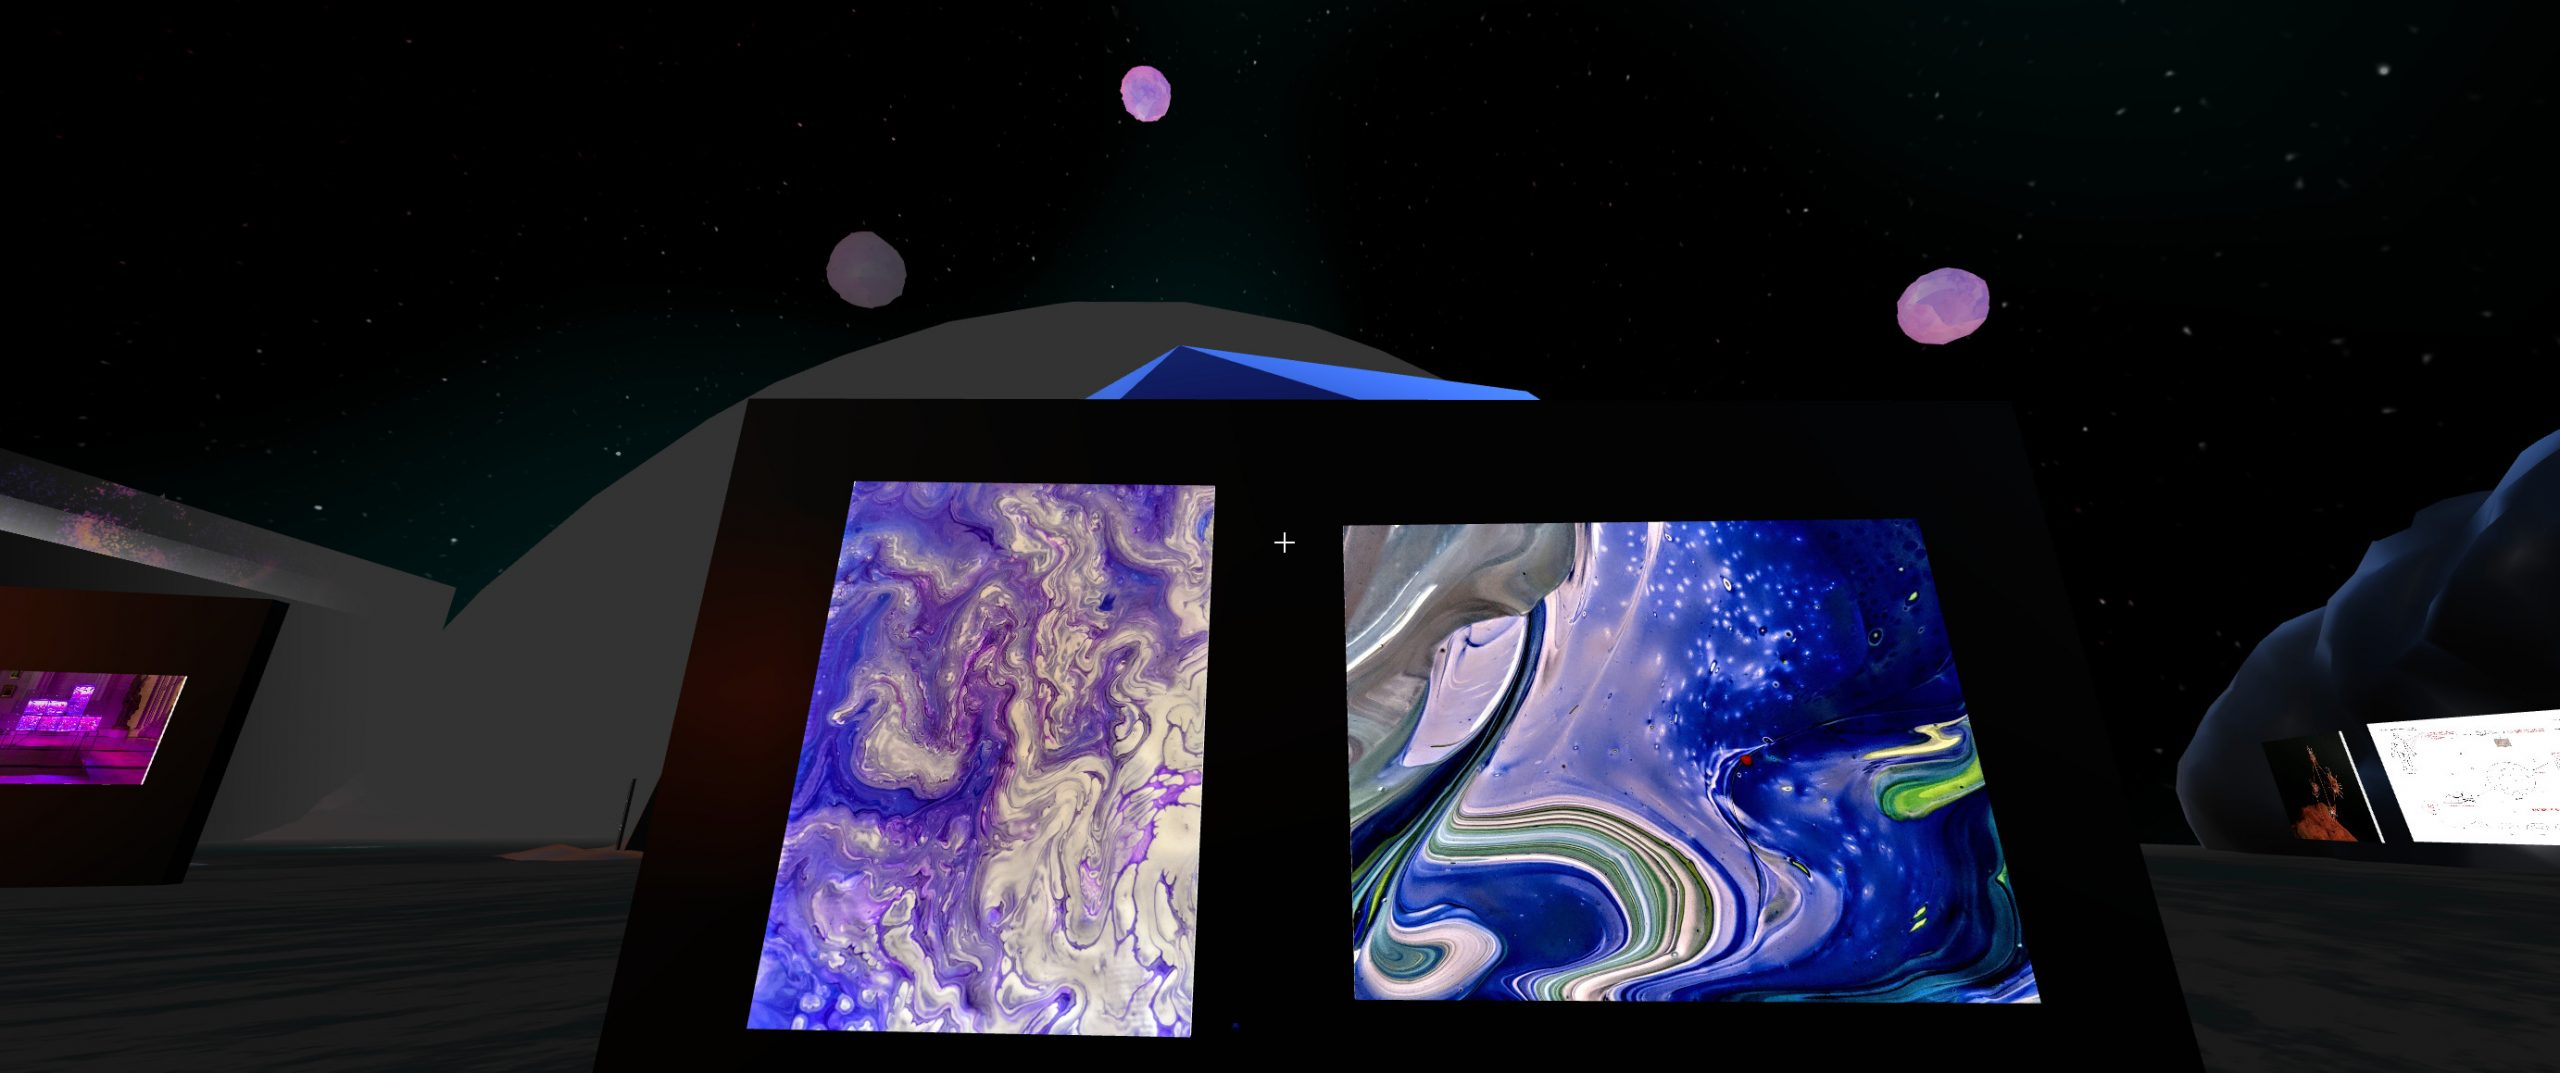 A black wall with two images. The images show purple, paint- or cloud-like swirls, mixed with greens, blues, and lighter colours.